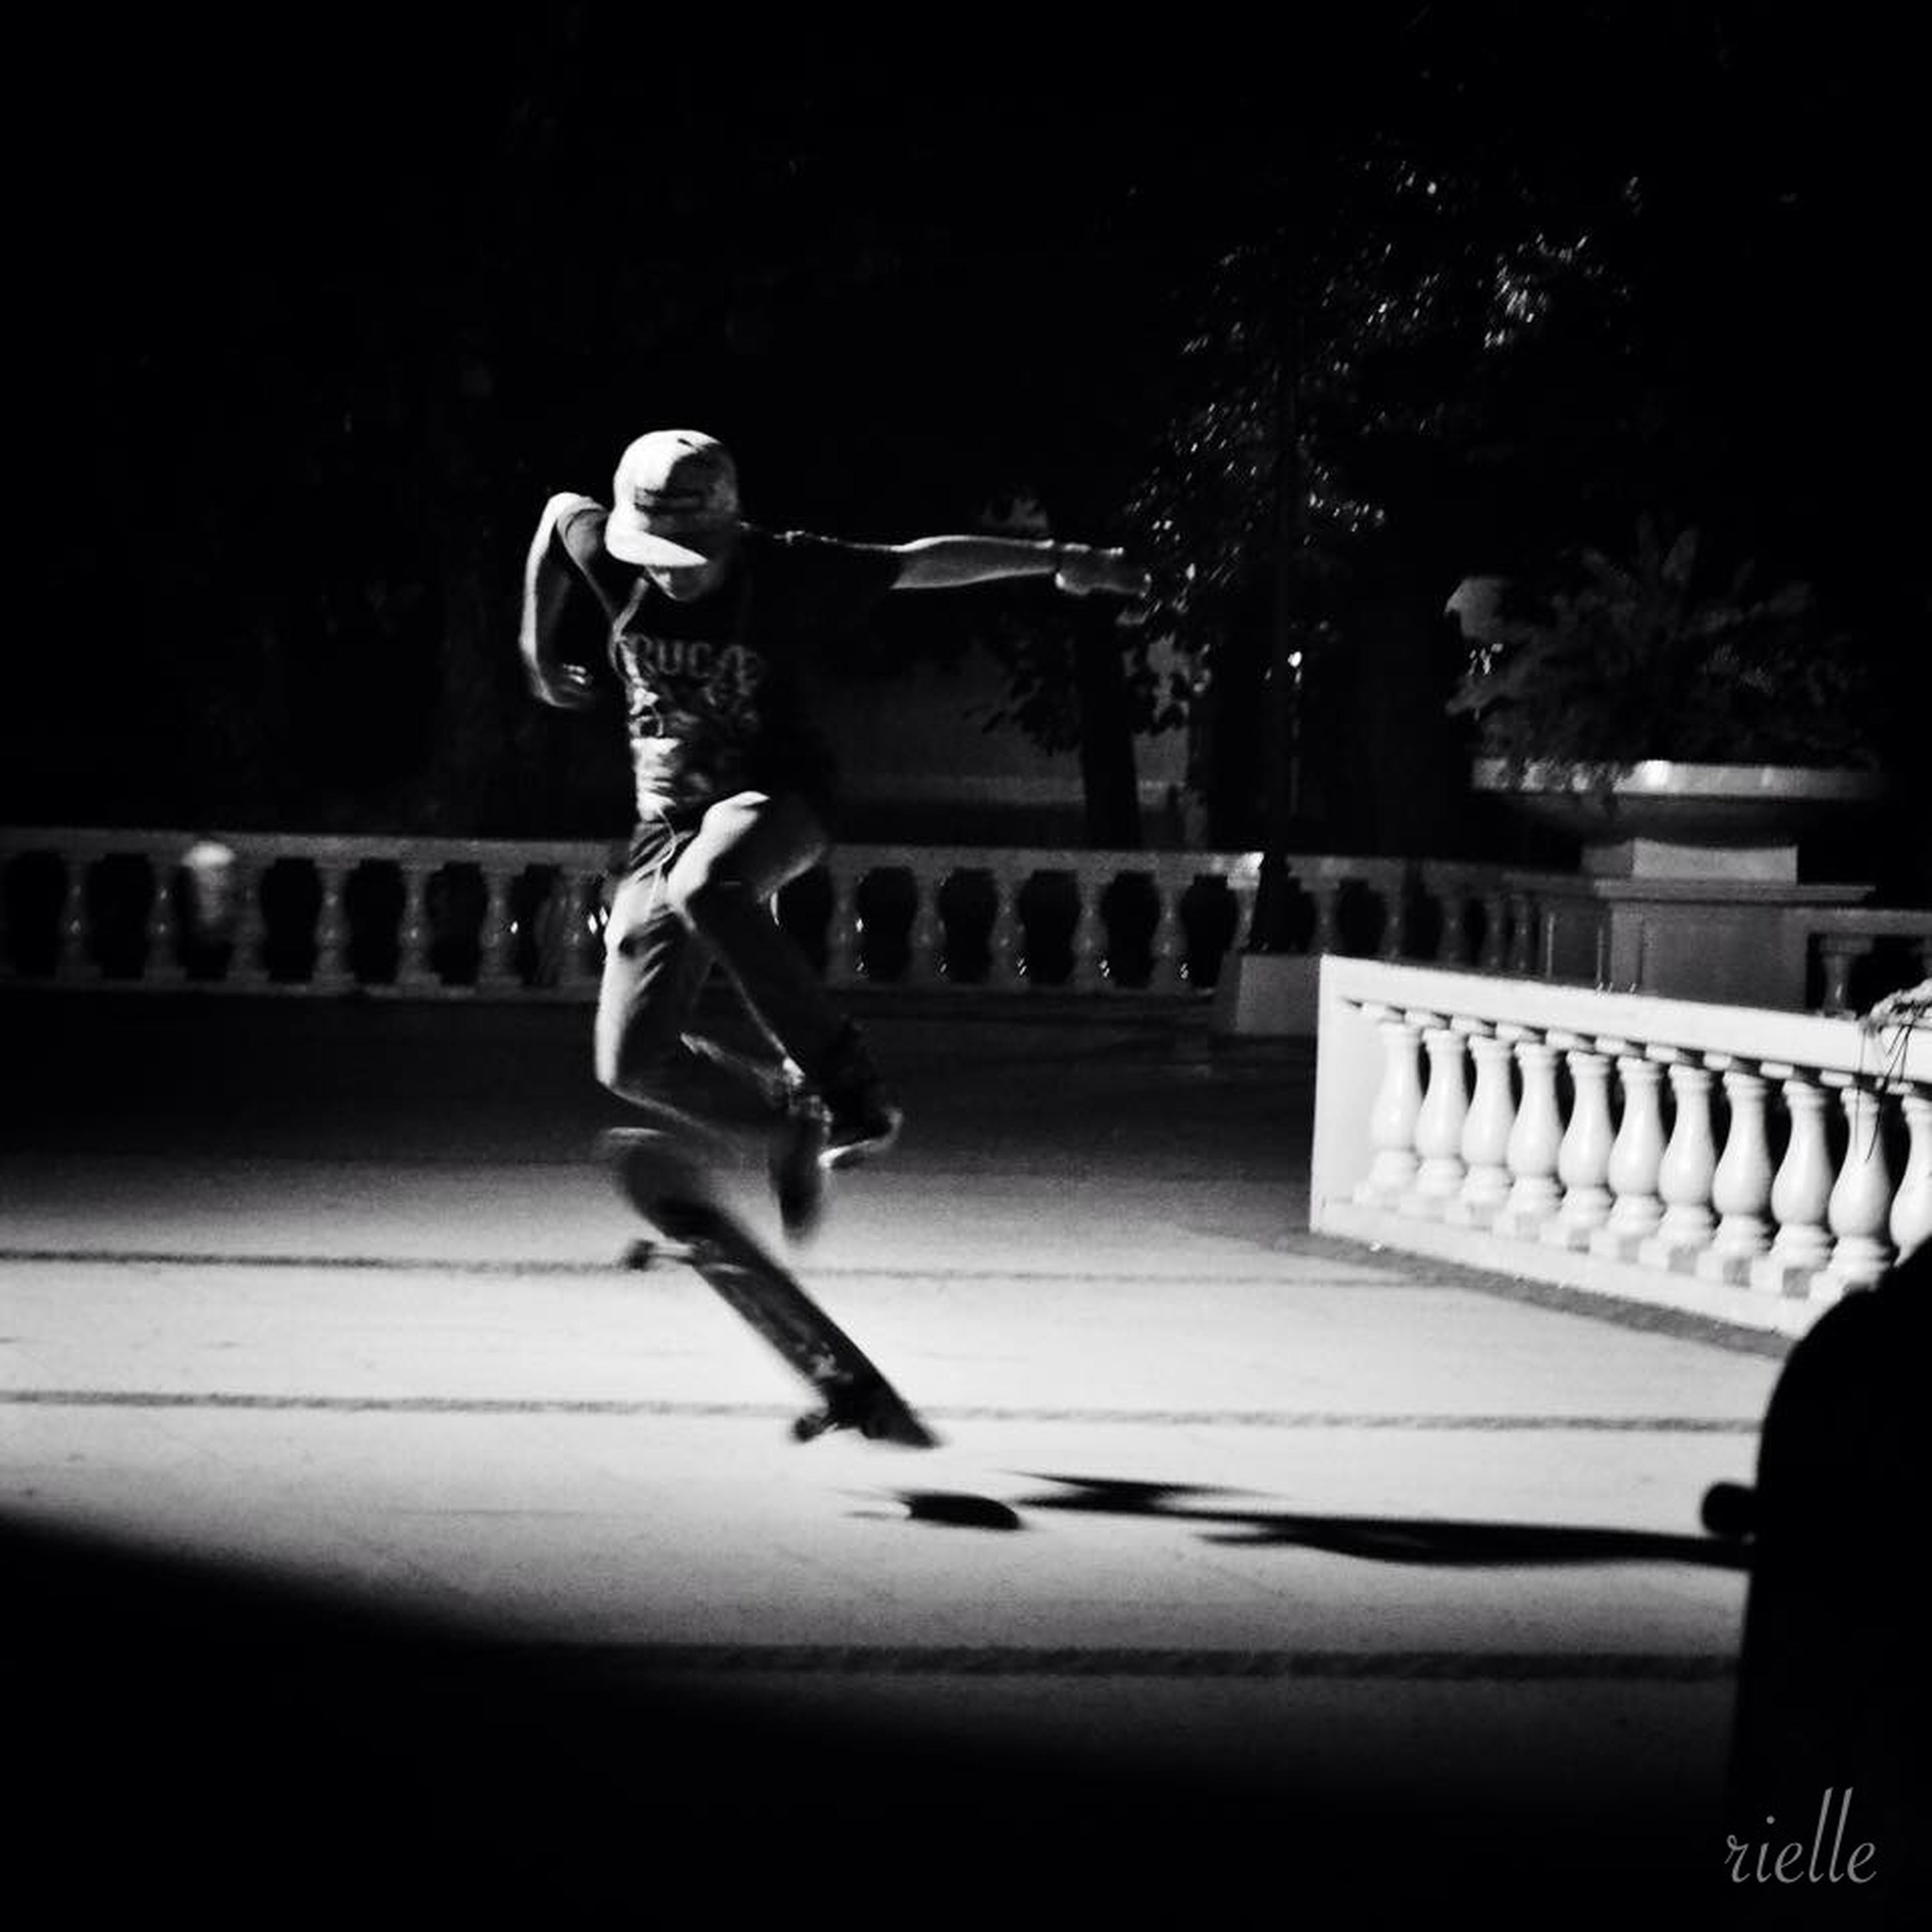 full length, lifestyles, leisure activity, street, casual clothing, motion, road, side view, skill, men, skateboarding, rear view, walking, childhood, skateboard, night, person, outdoors